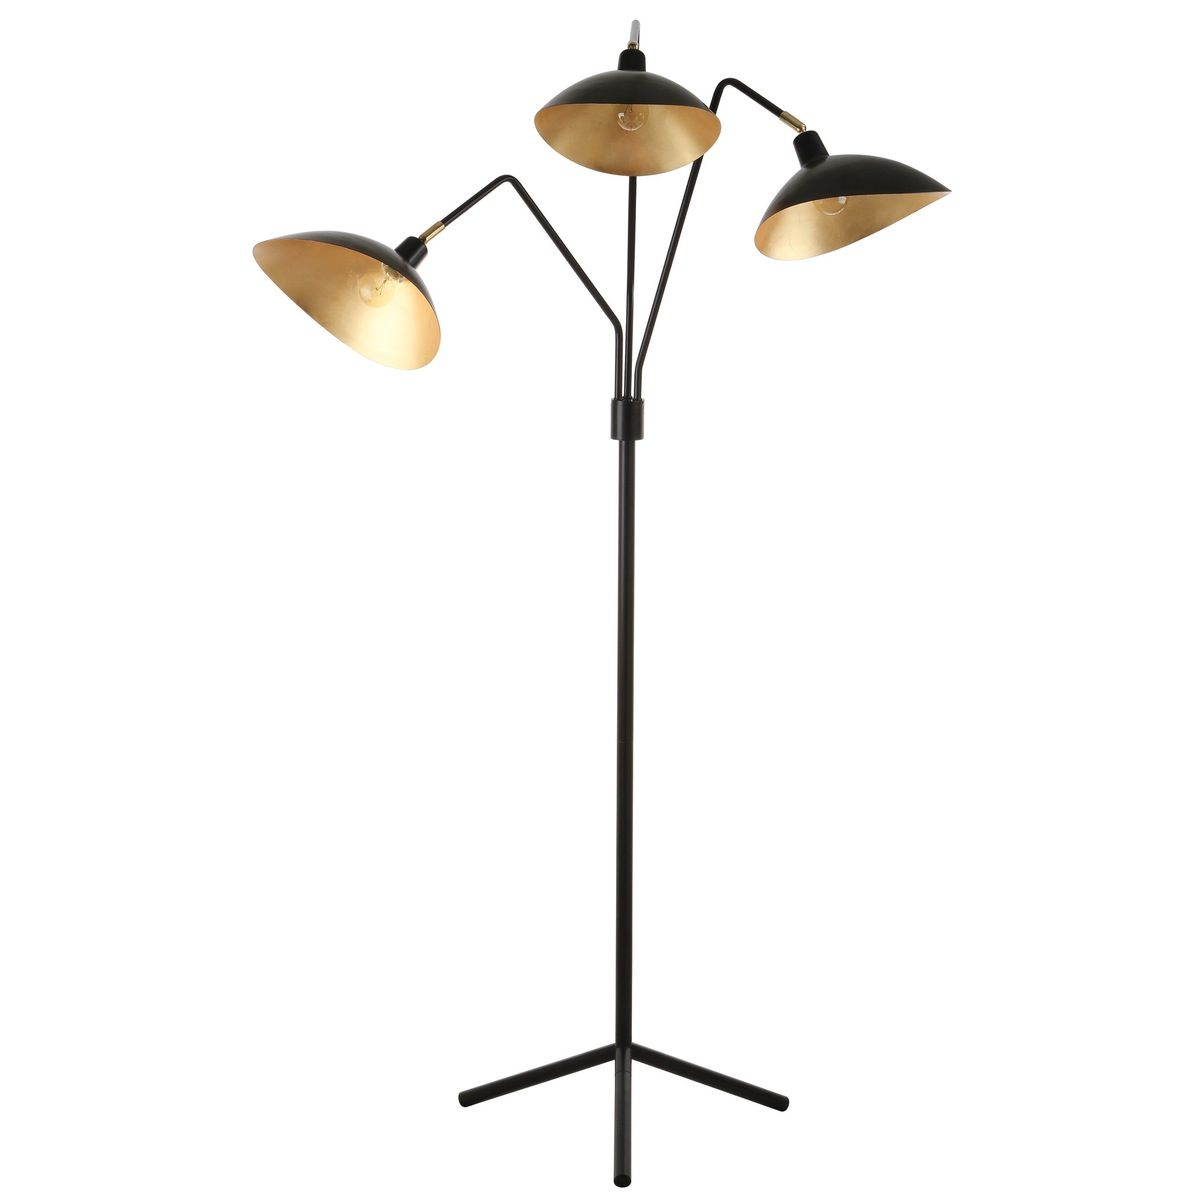 1200x1200 Safavieh Iris Floor Lamp Contemporary Floor Lamps, Floor Lamp